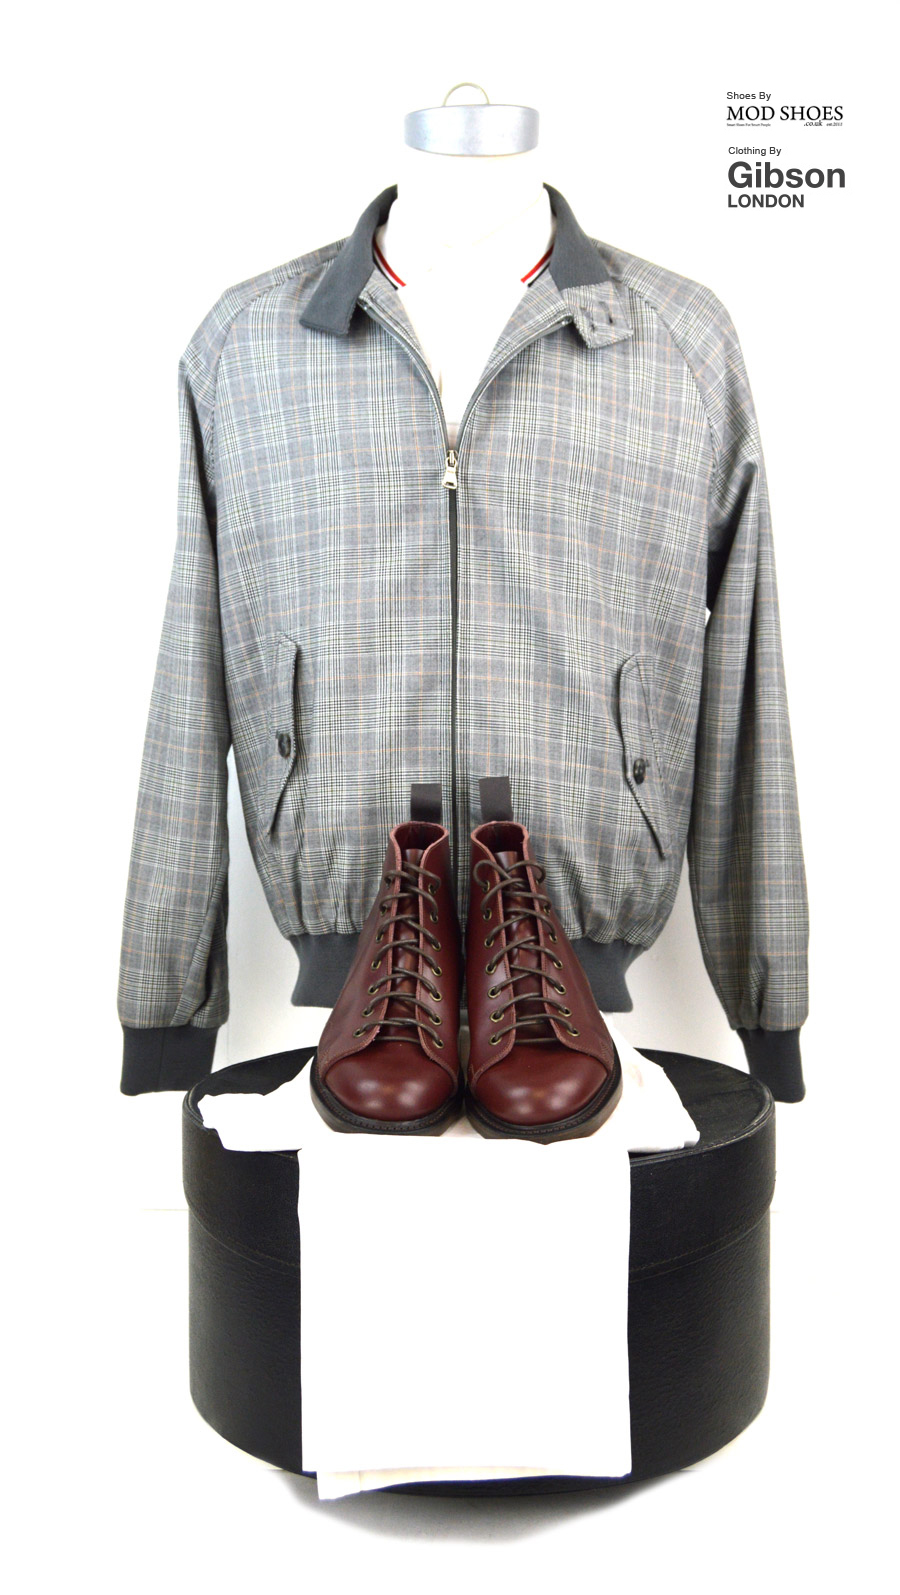 modshoes-oxblood-monkey-boots-with-prince-of-wales-harrington-from-gibson-clothing